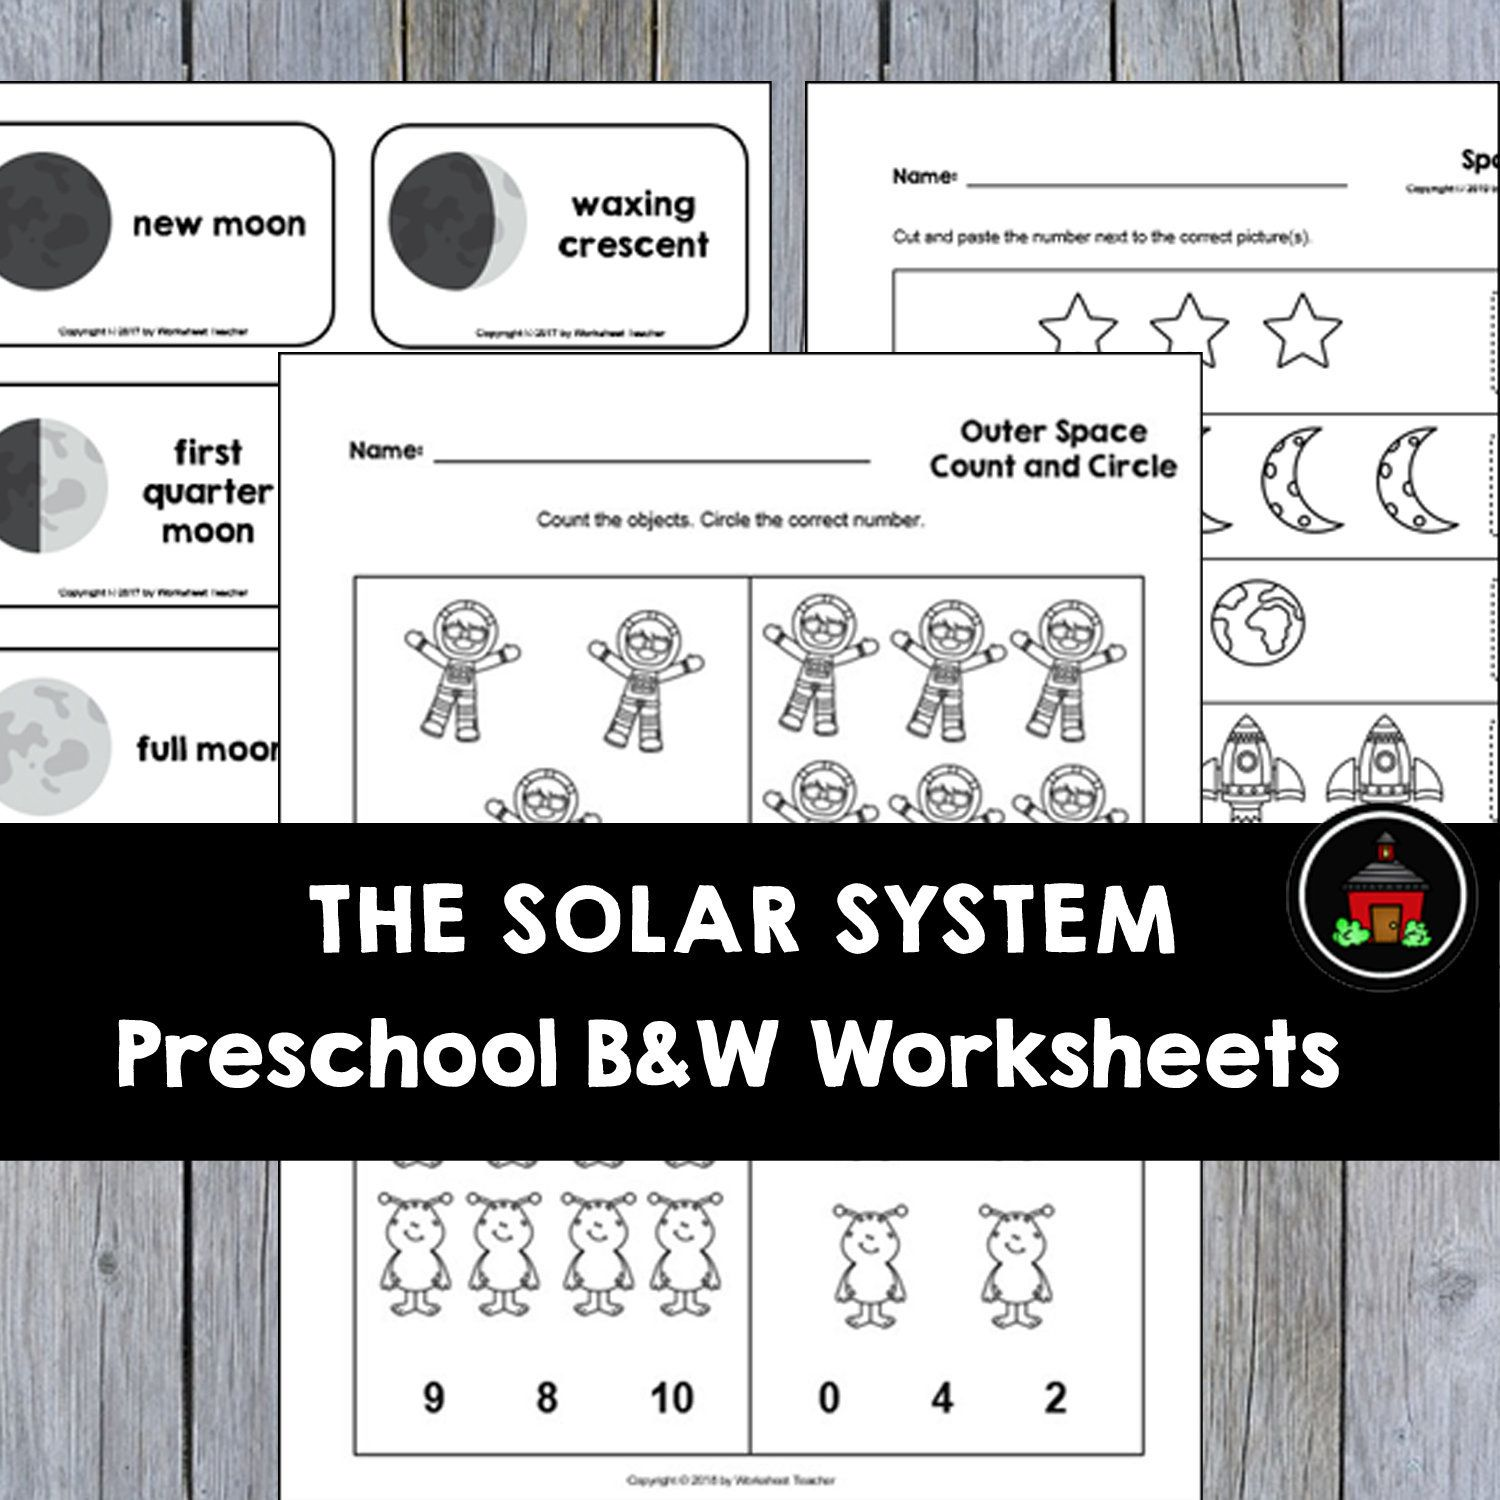 10 The Solar System Preschool Curriculum Activities